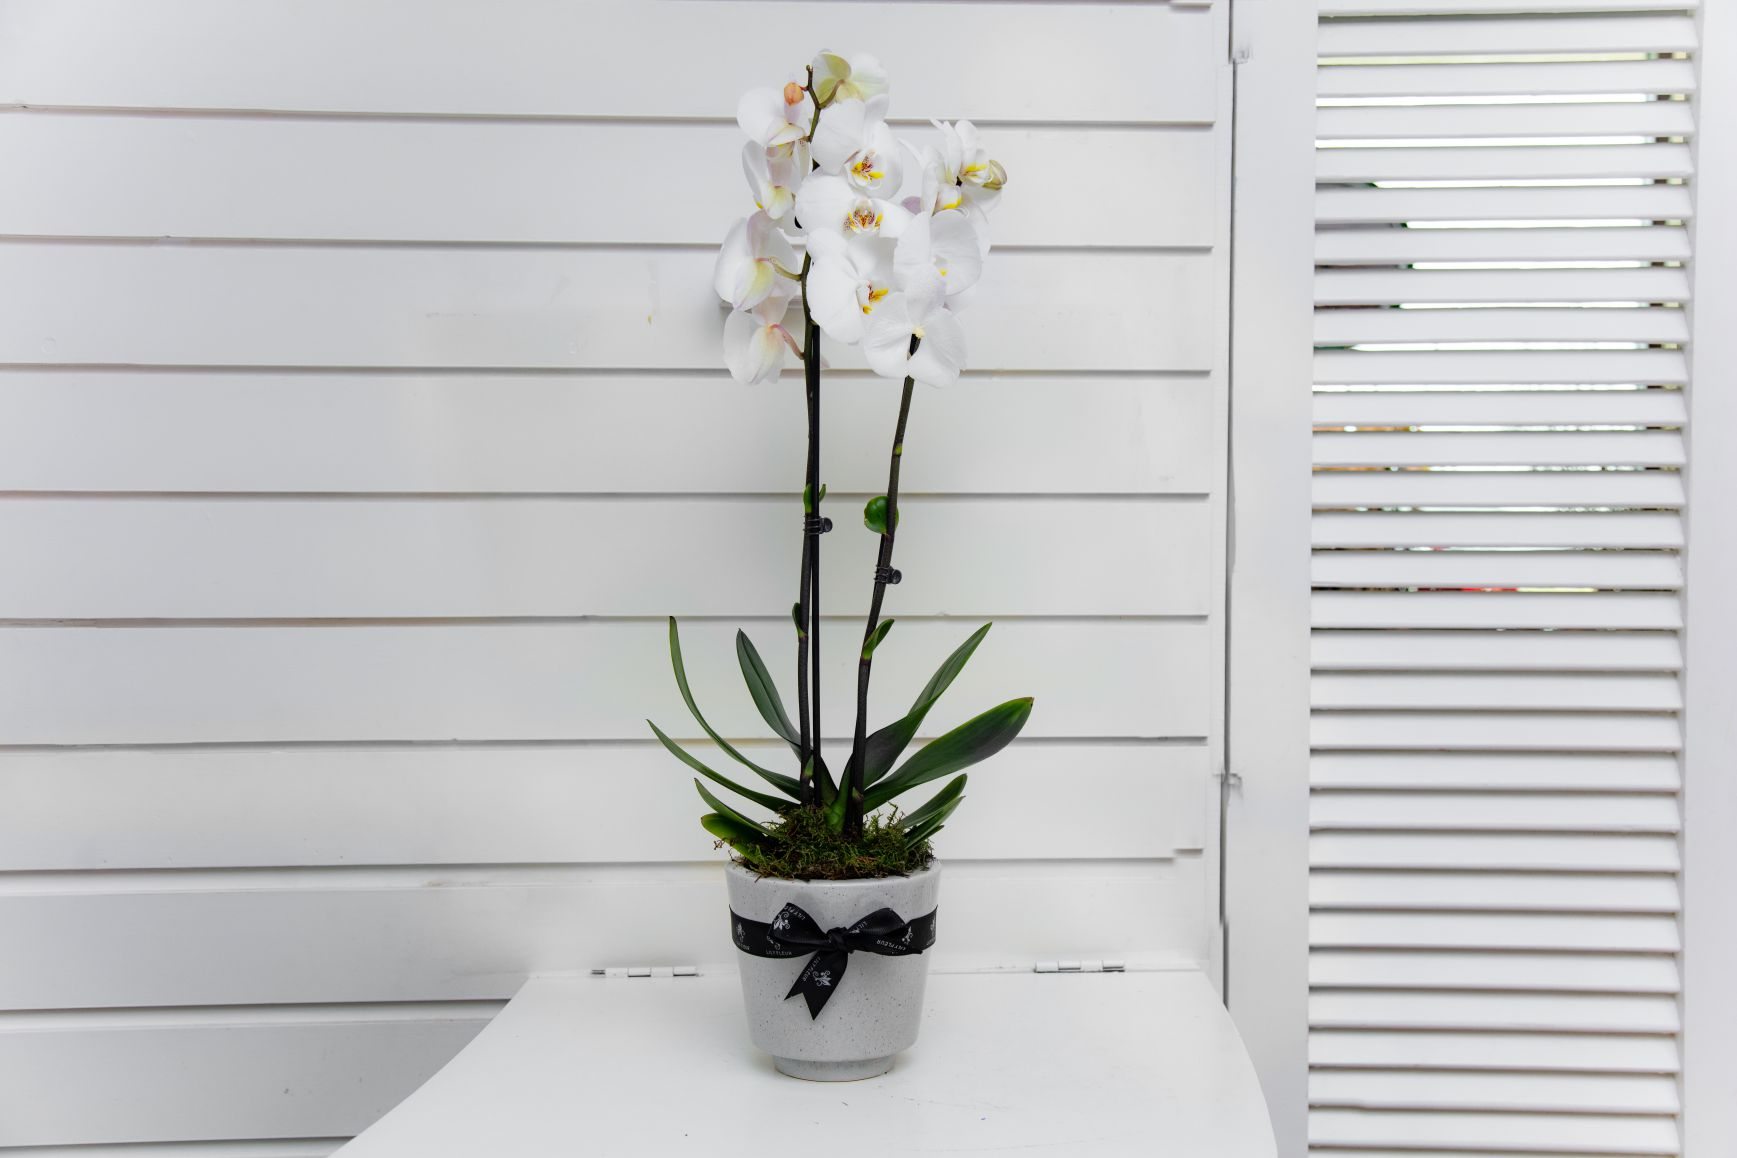 Jard orchid Flower with Base